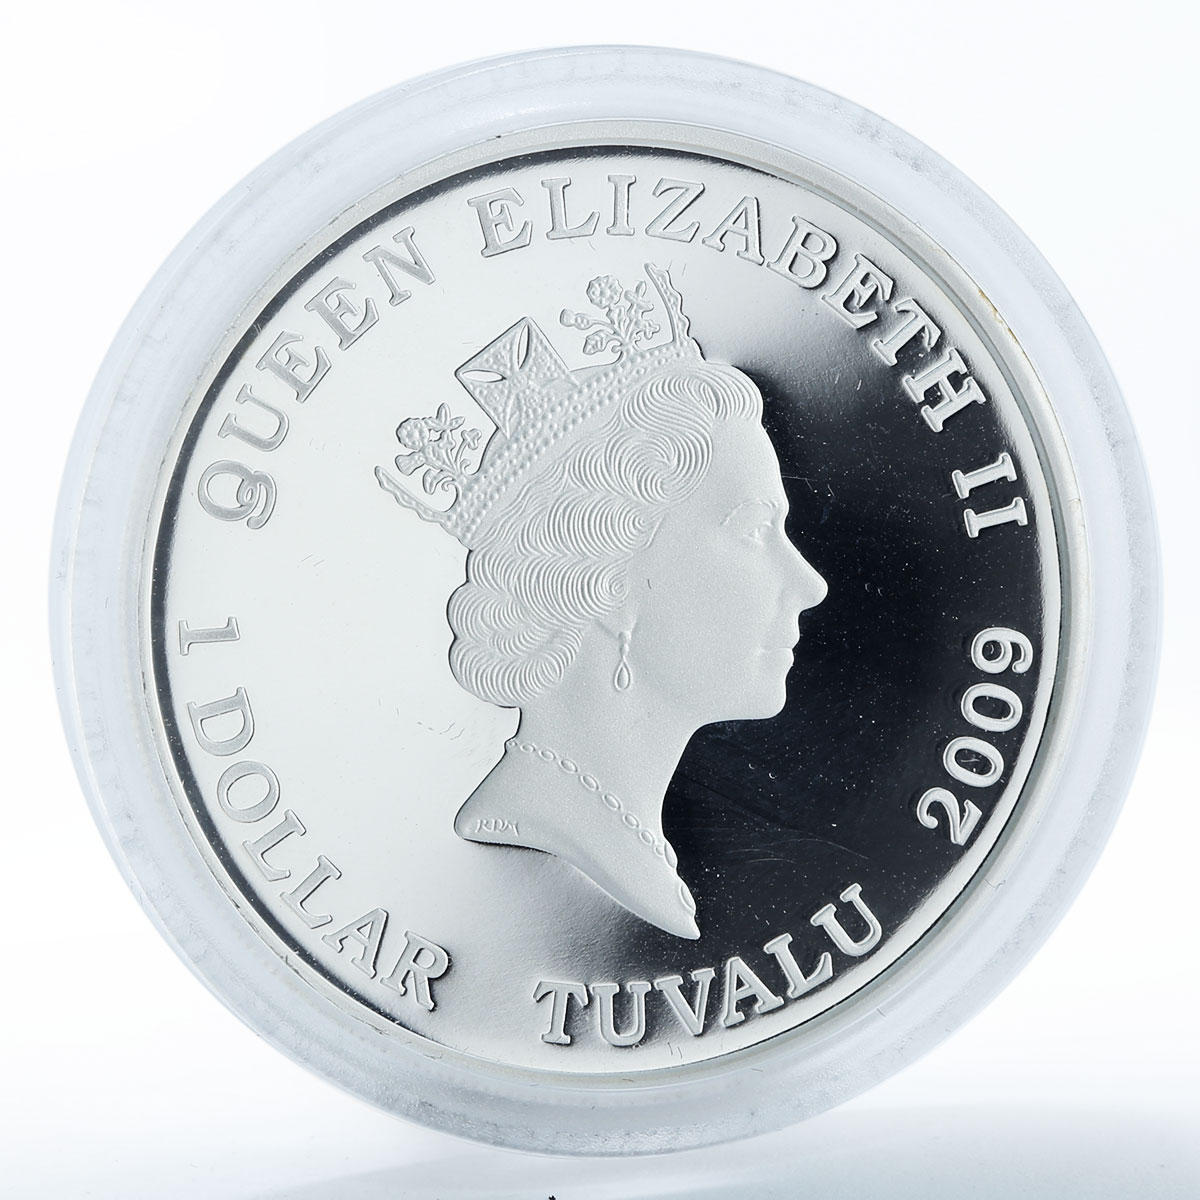 Tuvalu, 1 dollar Battle of Balaklava 1854 , silver coloured proof coin 2009